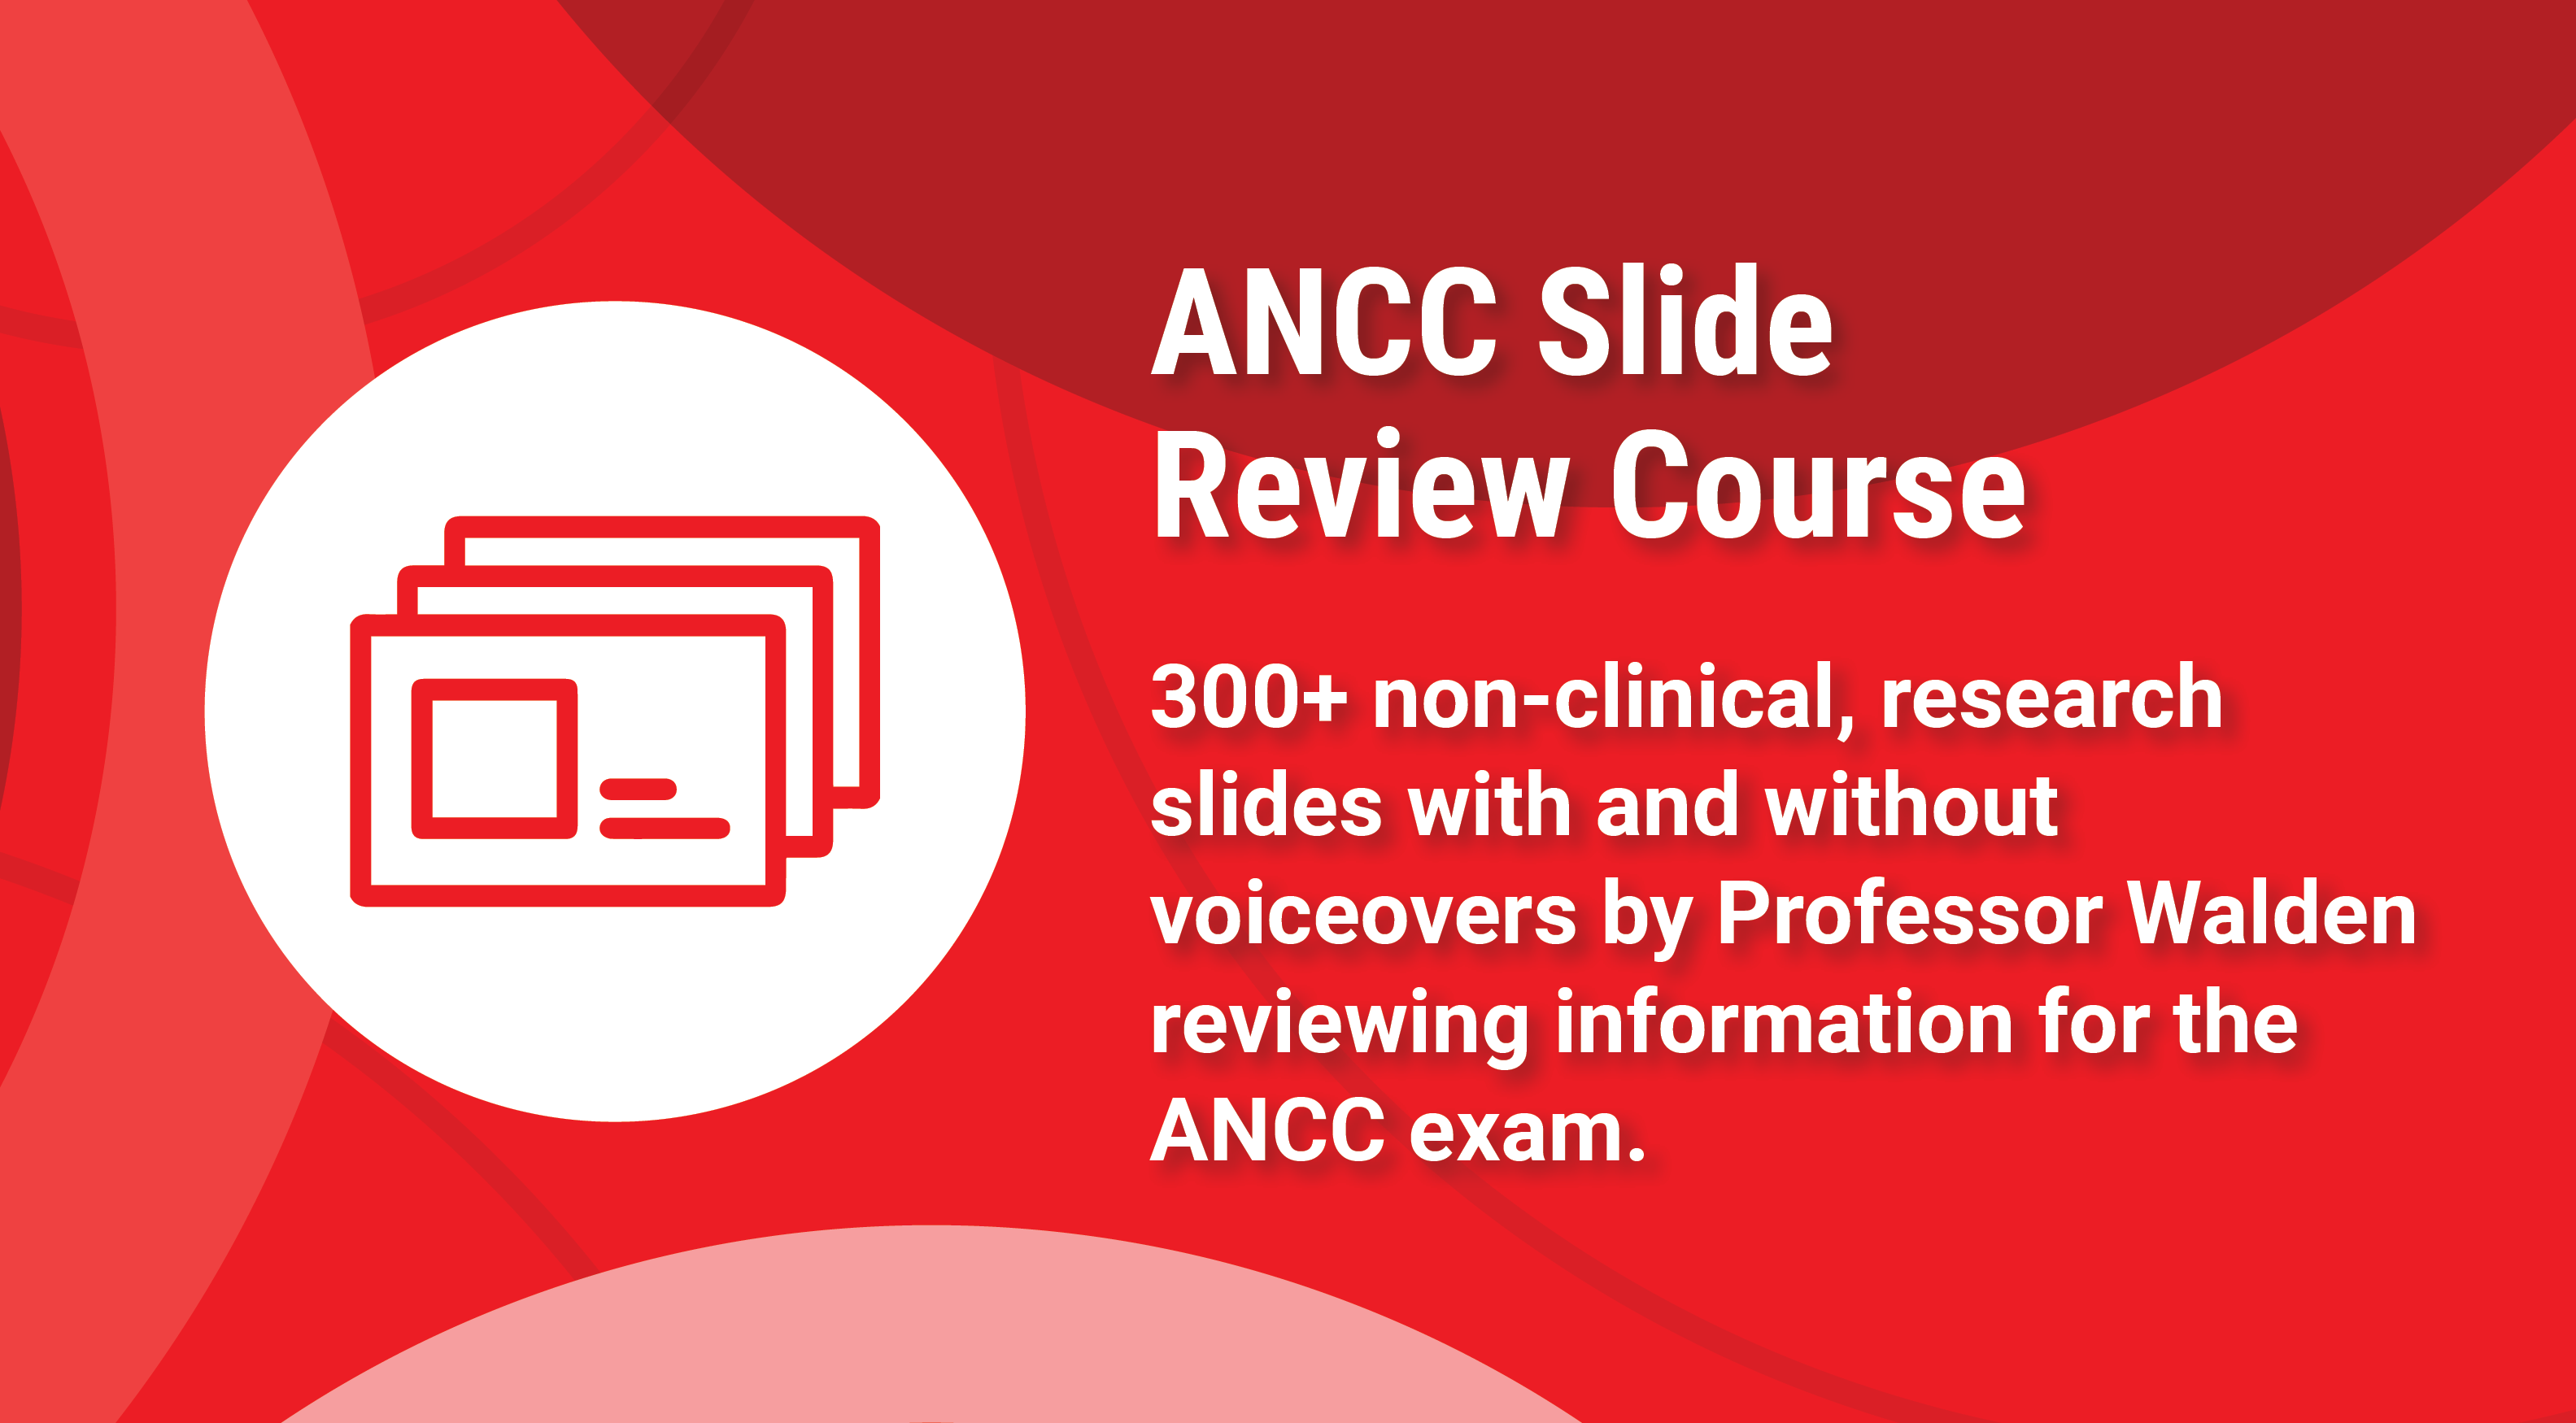 ANCC Slide Review Course